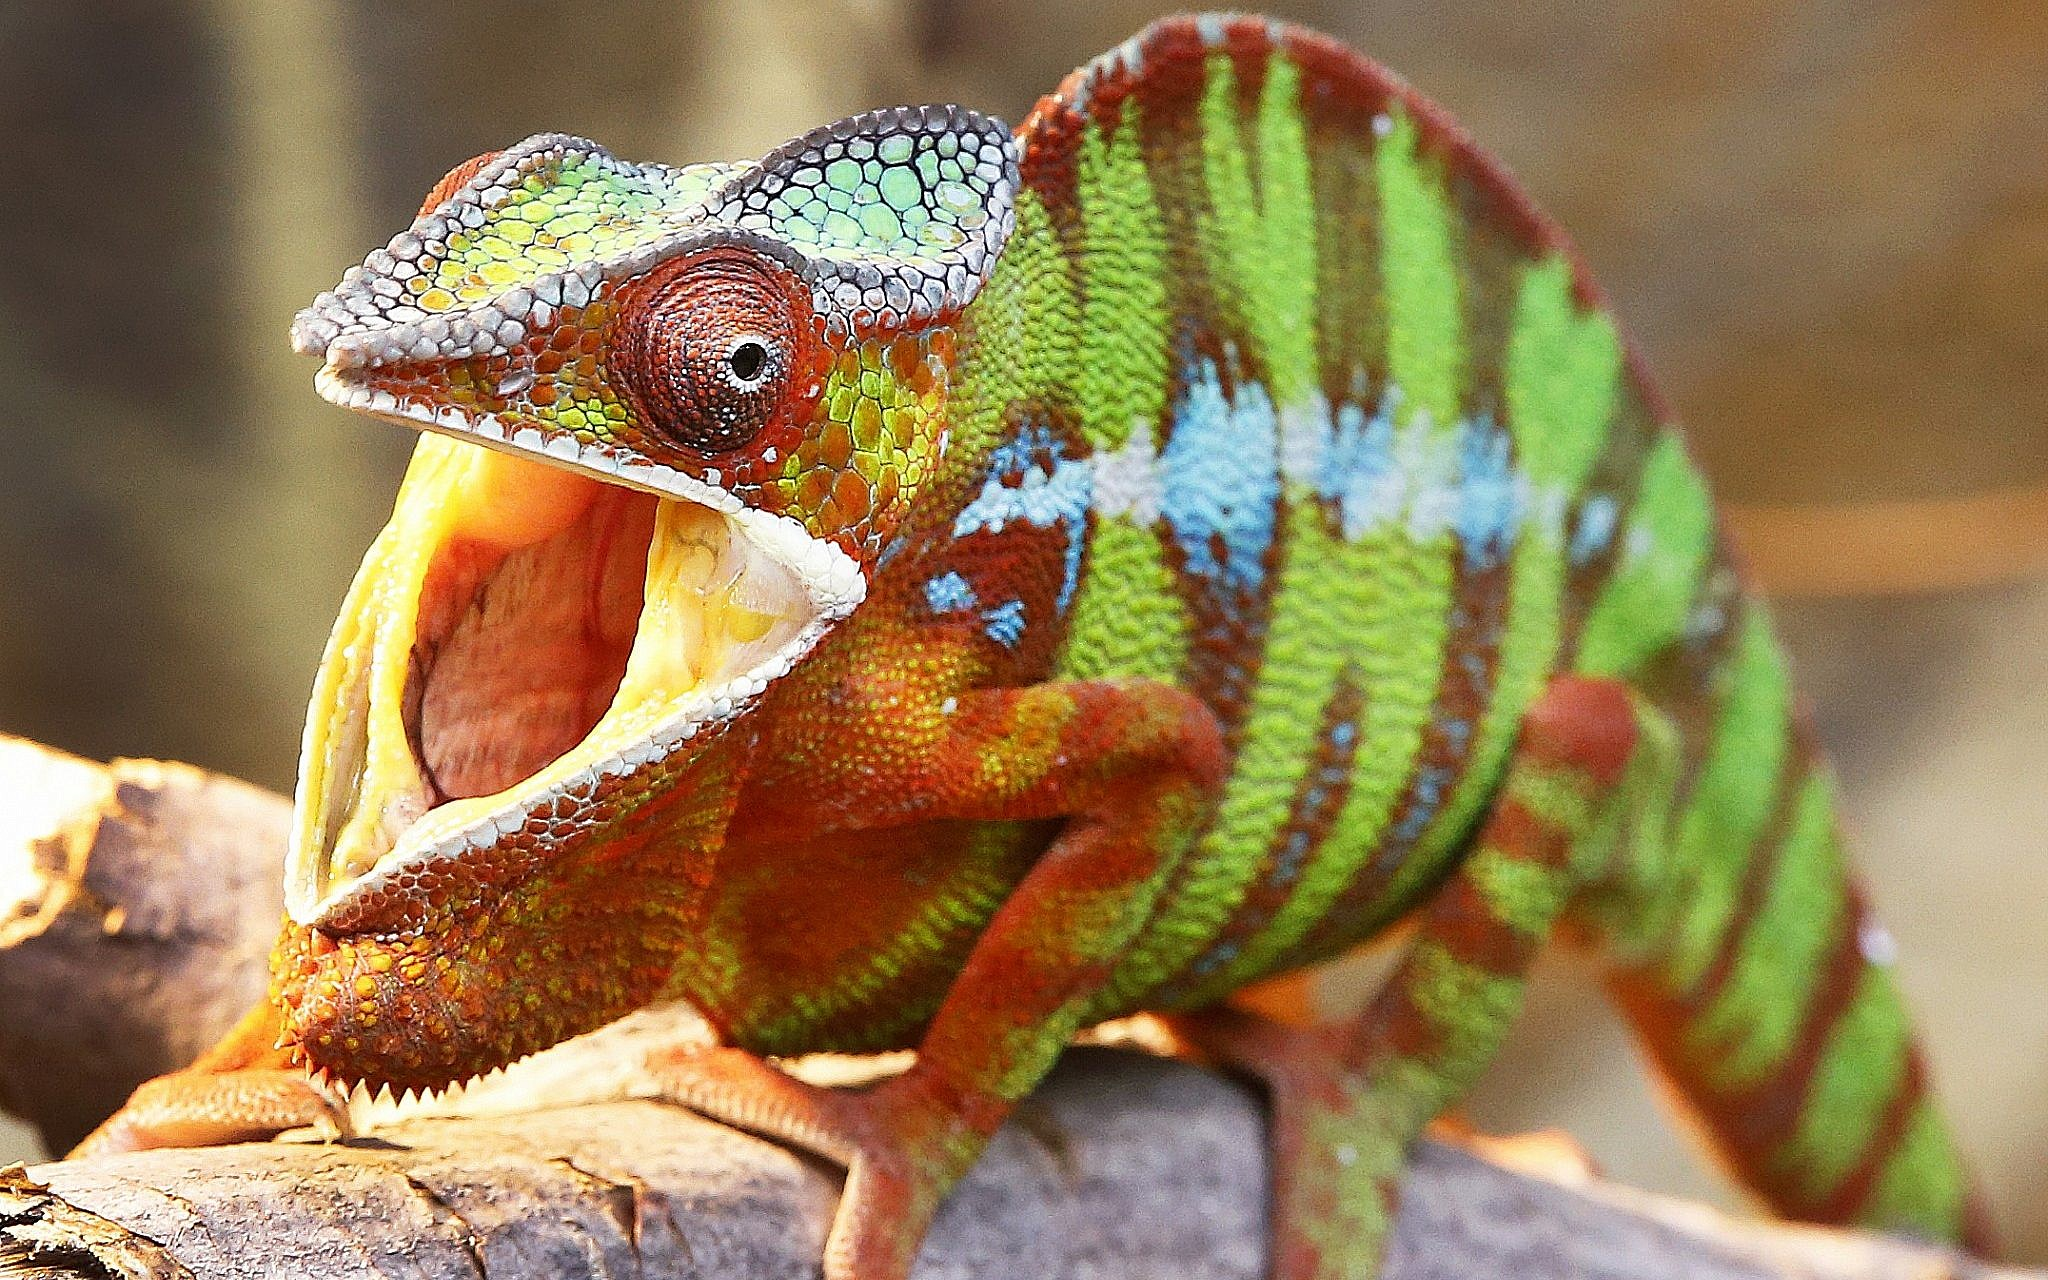 Iran accuses West of using lizards for nuclear spying | The Times of